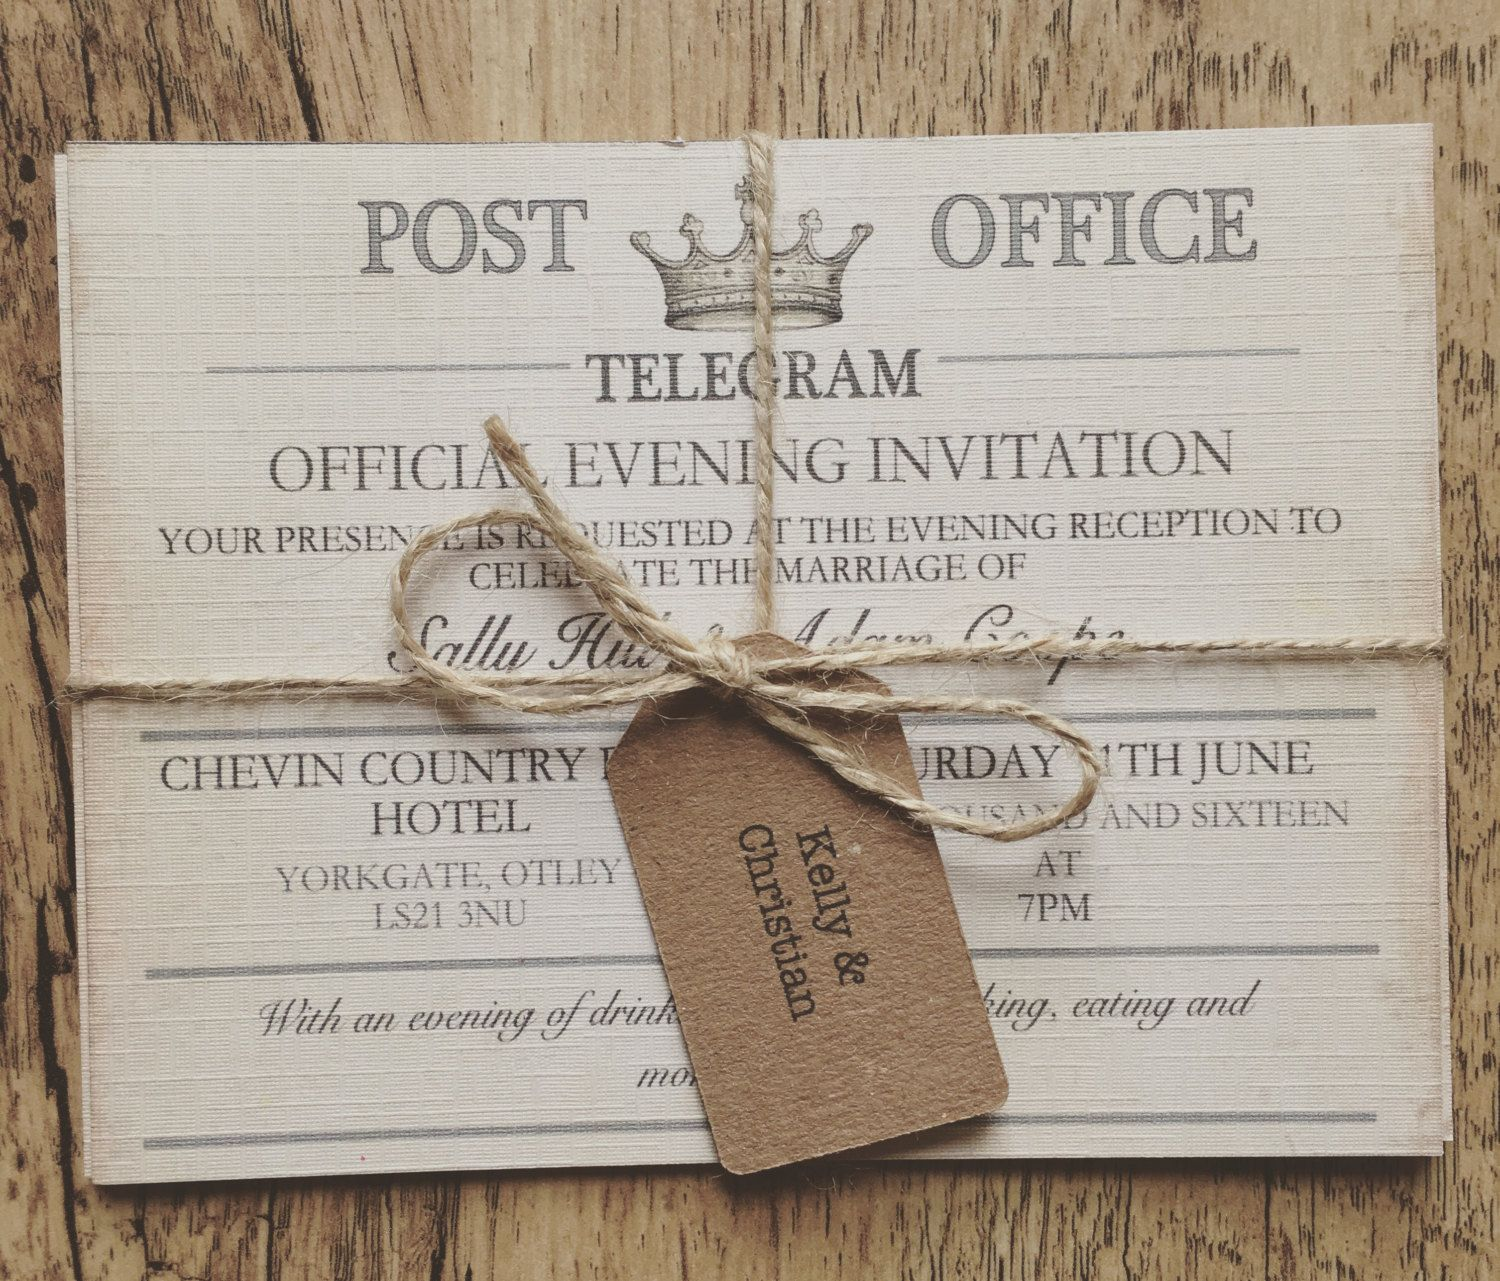 Vintage Wedding Invite: Vintage Travel Wedding Invitation,Telegram